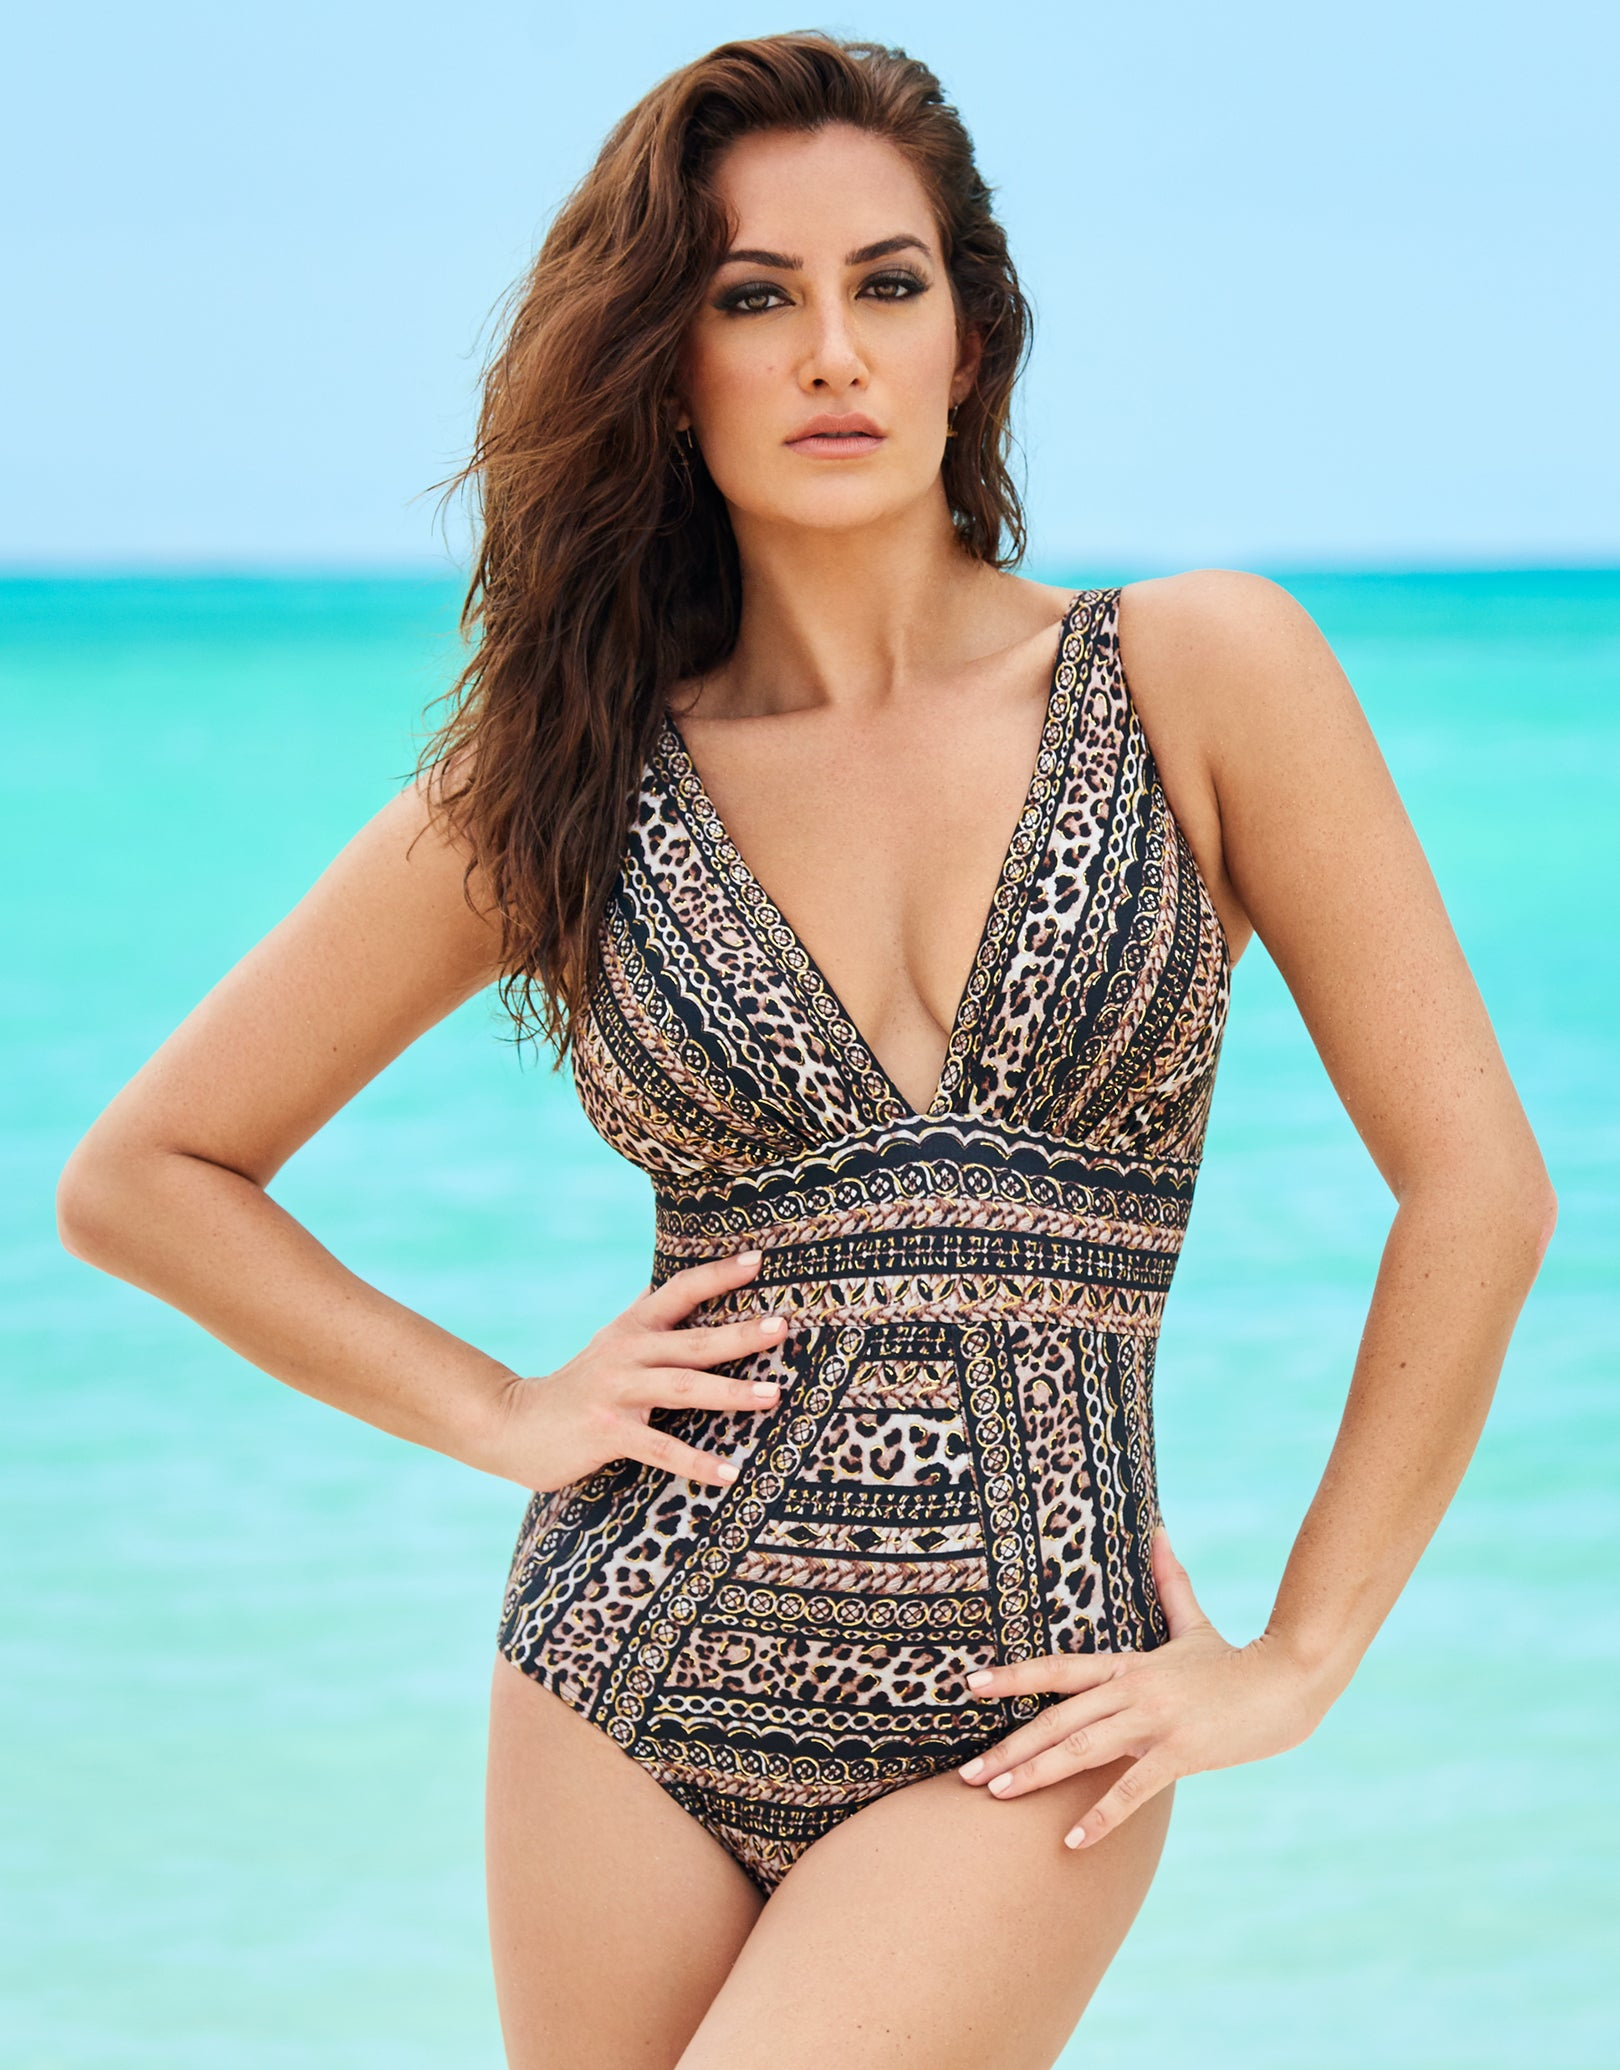 c8e8665806 Miraclesuit Lionessa Odyssey Swimsuit - Brown